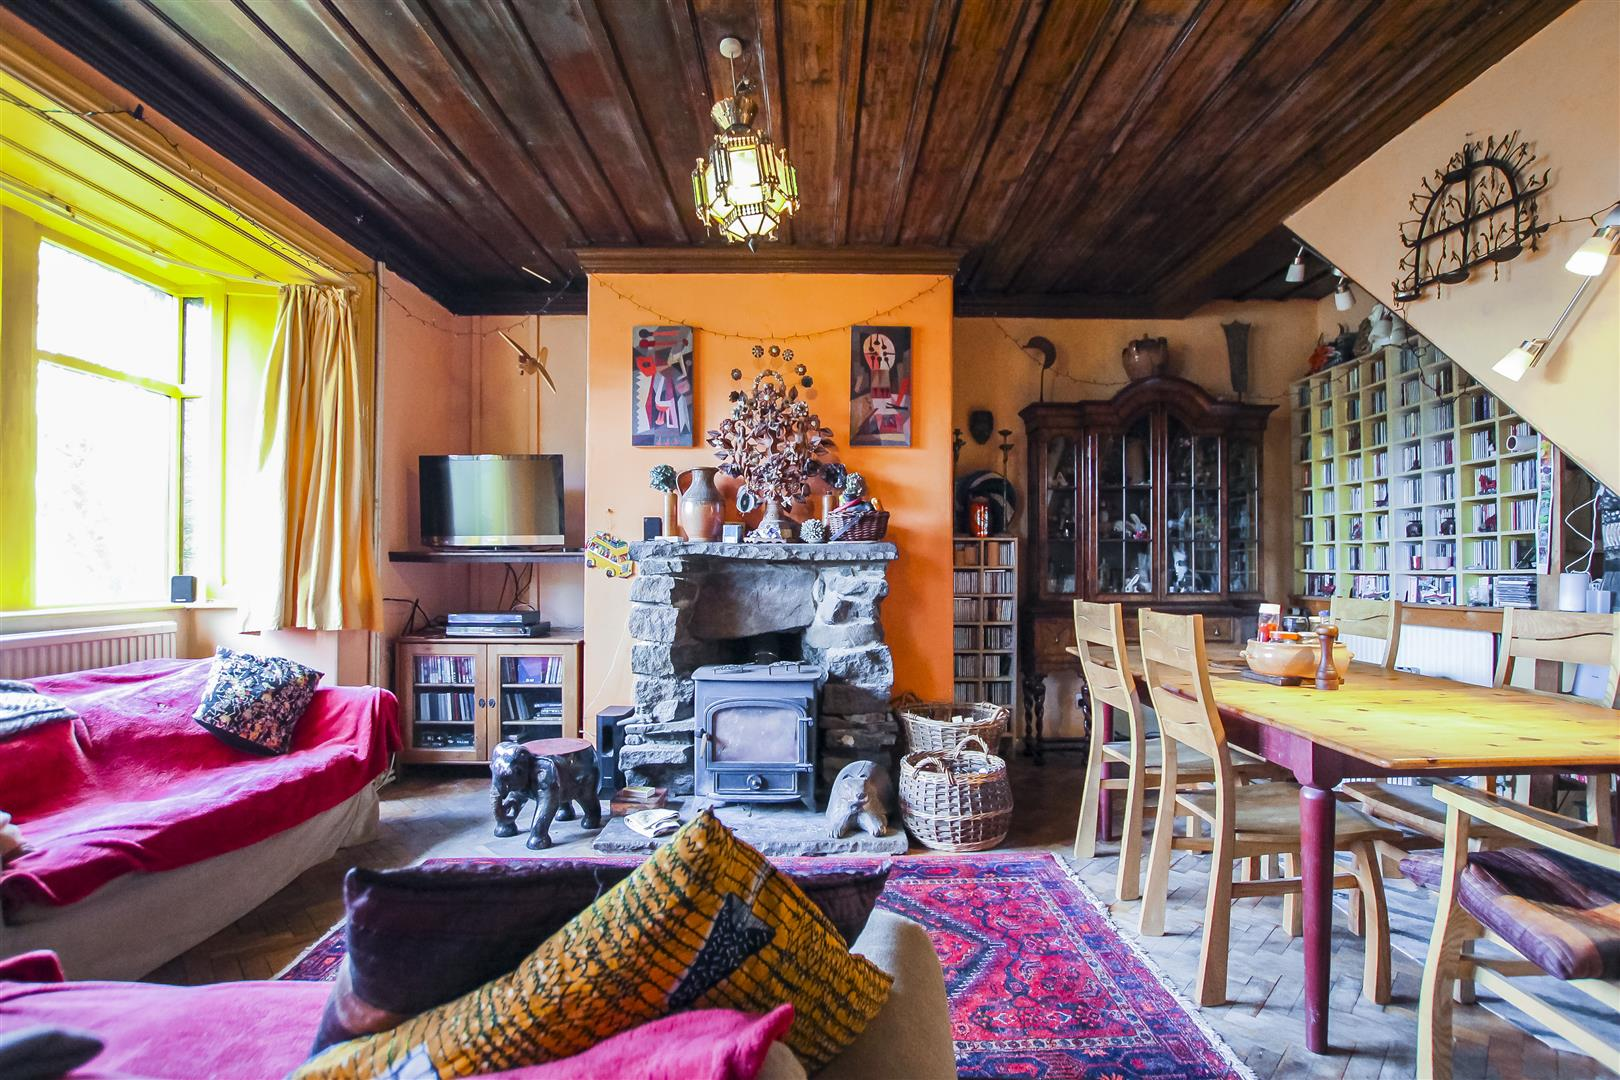 5 Bedroom Farmhouse For Sale - Image 30